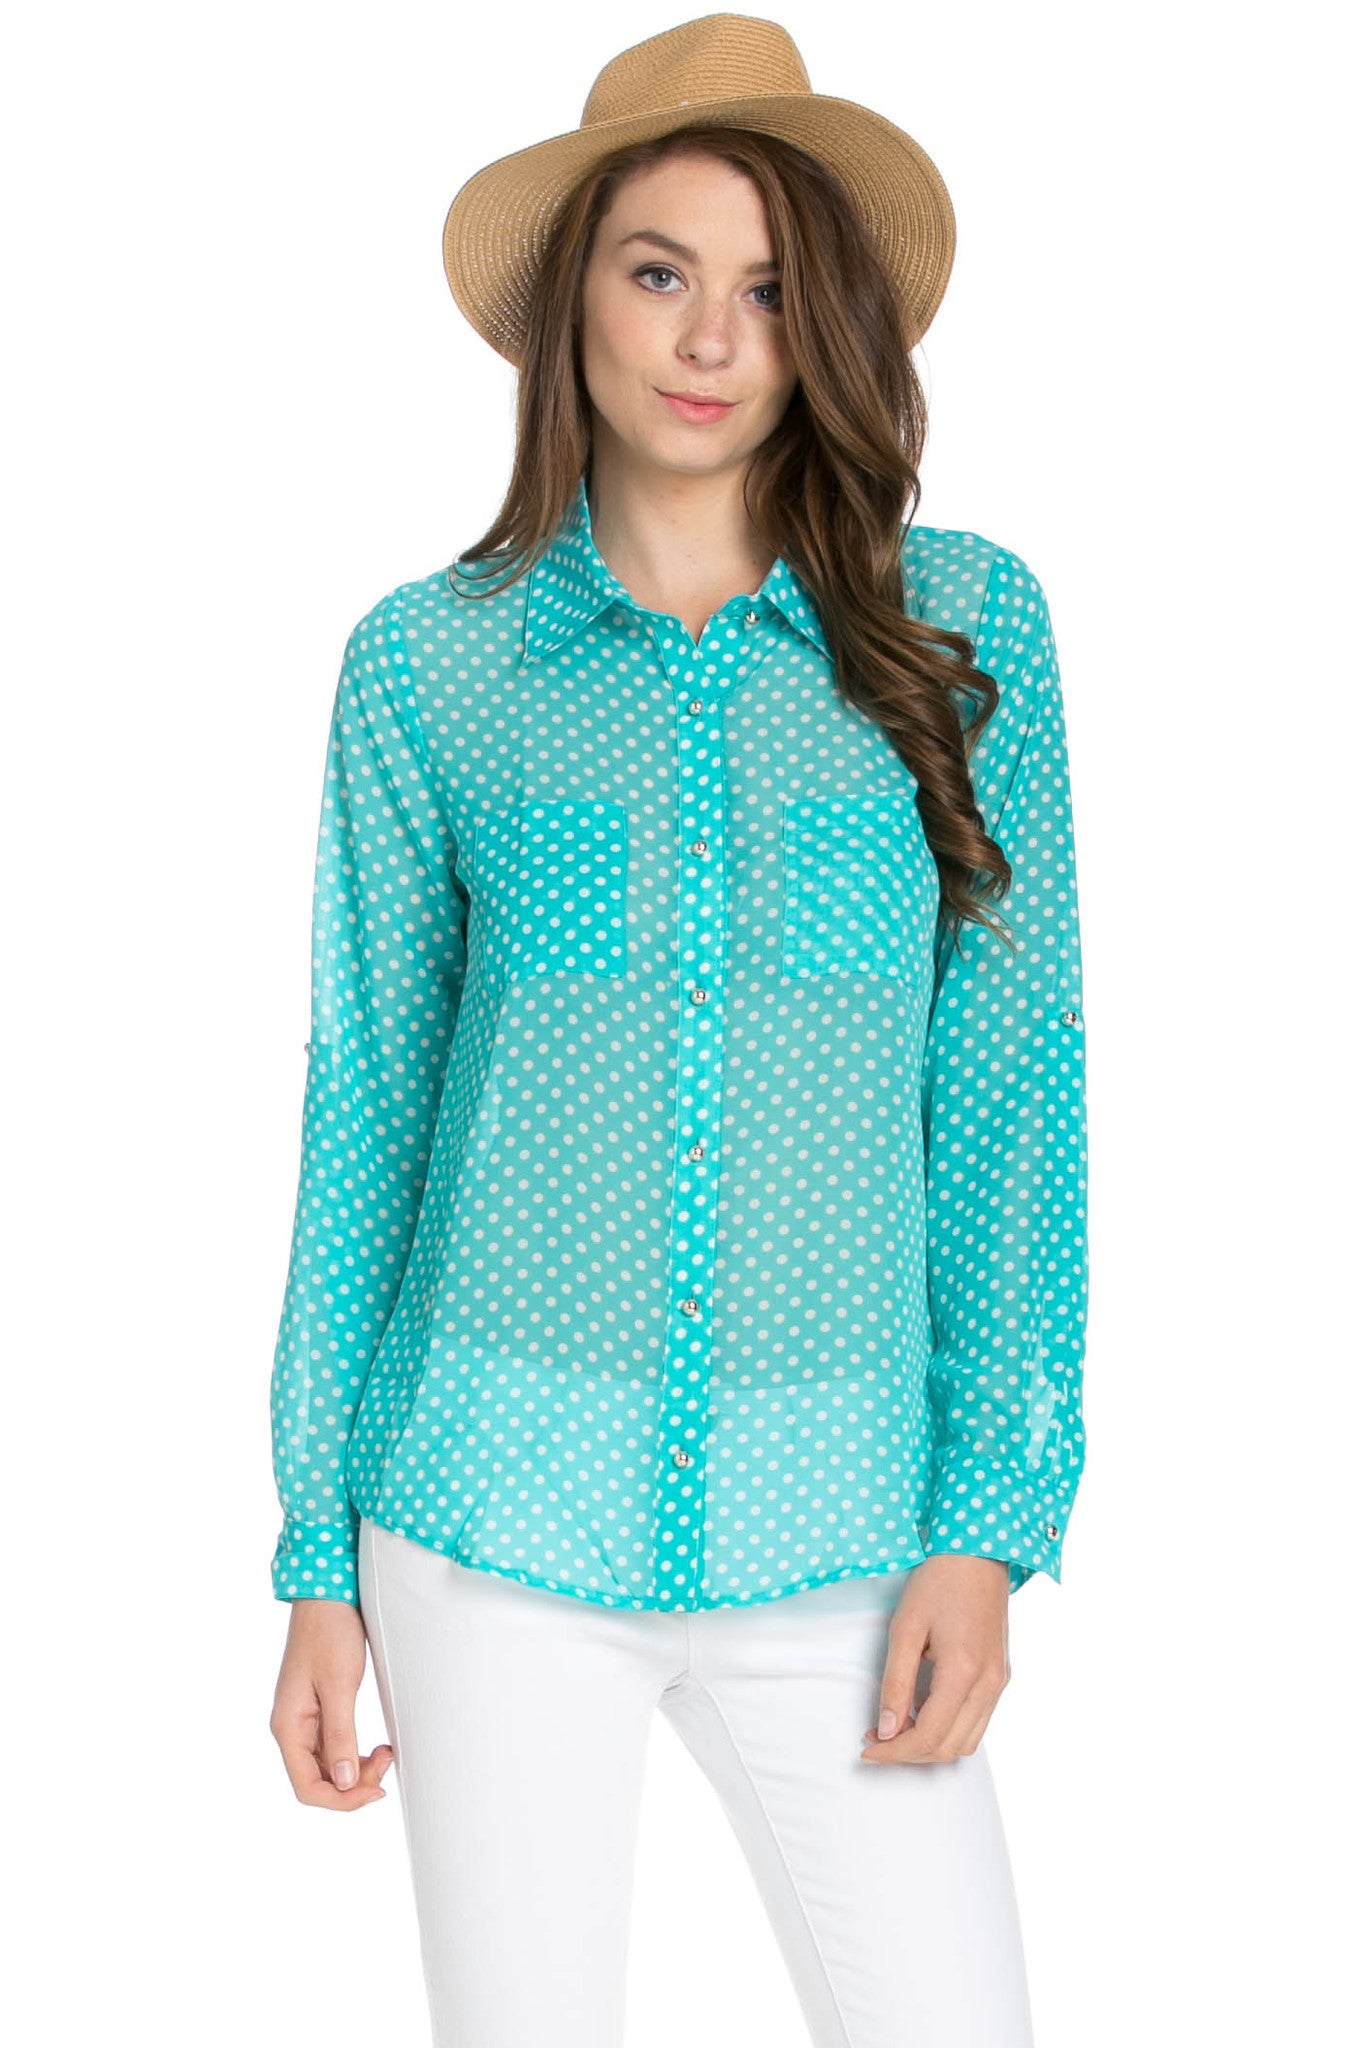 Polka Dot V-Neck Chiffon Blouse Mint - Tops - My Yuccie - 1